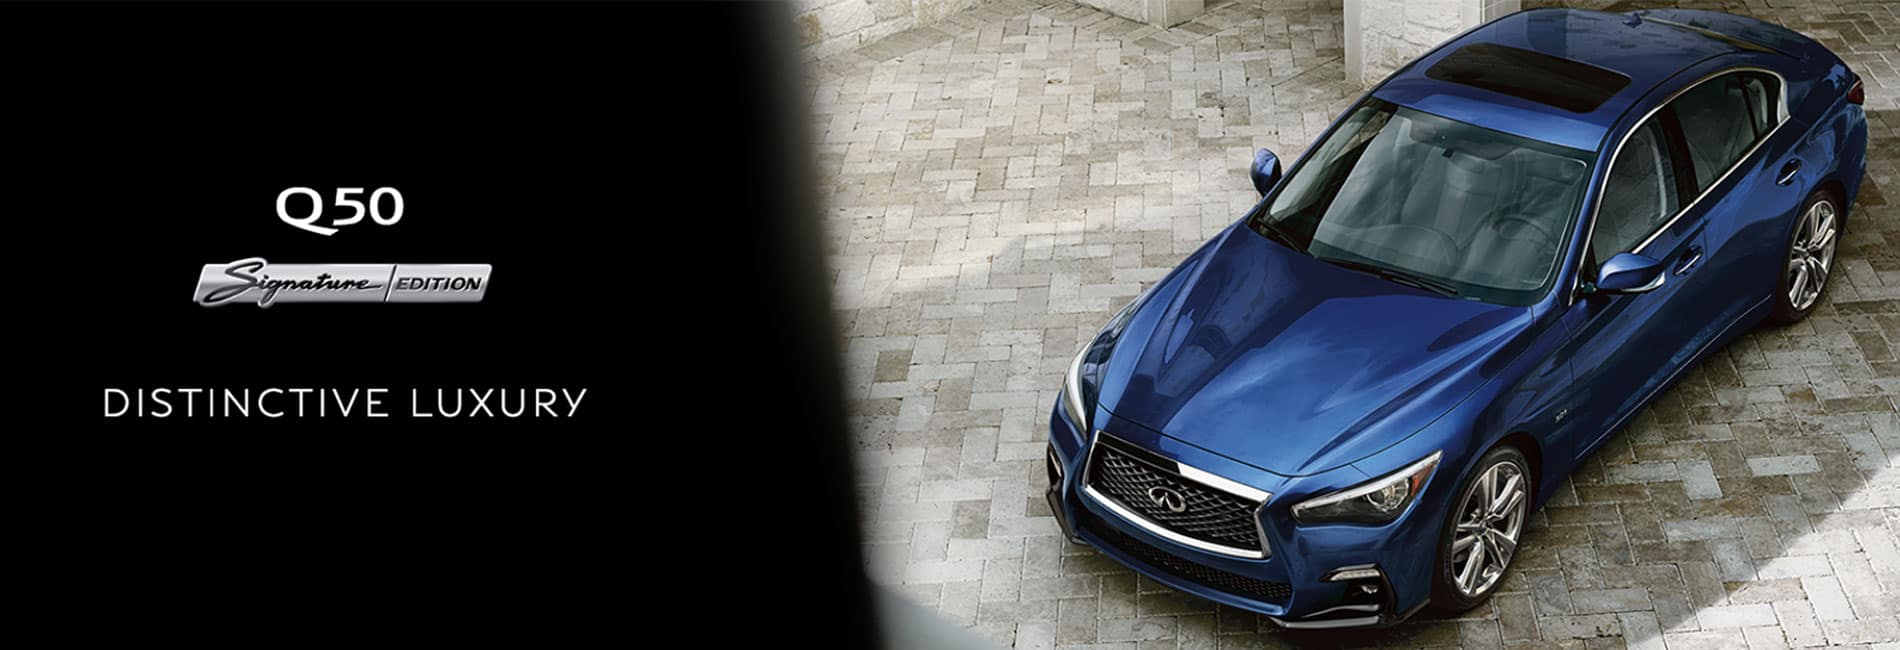 Shop the Q50 Signature Edition at Berman INFINITI Chicago!